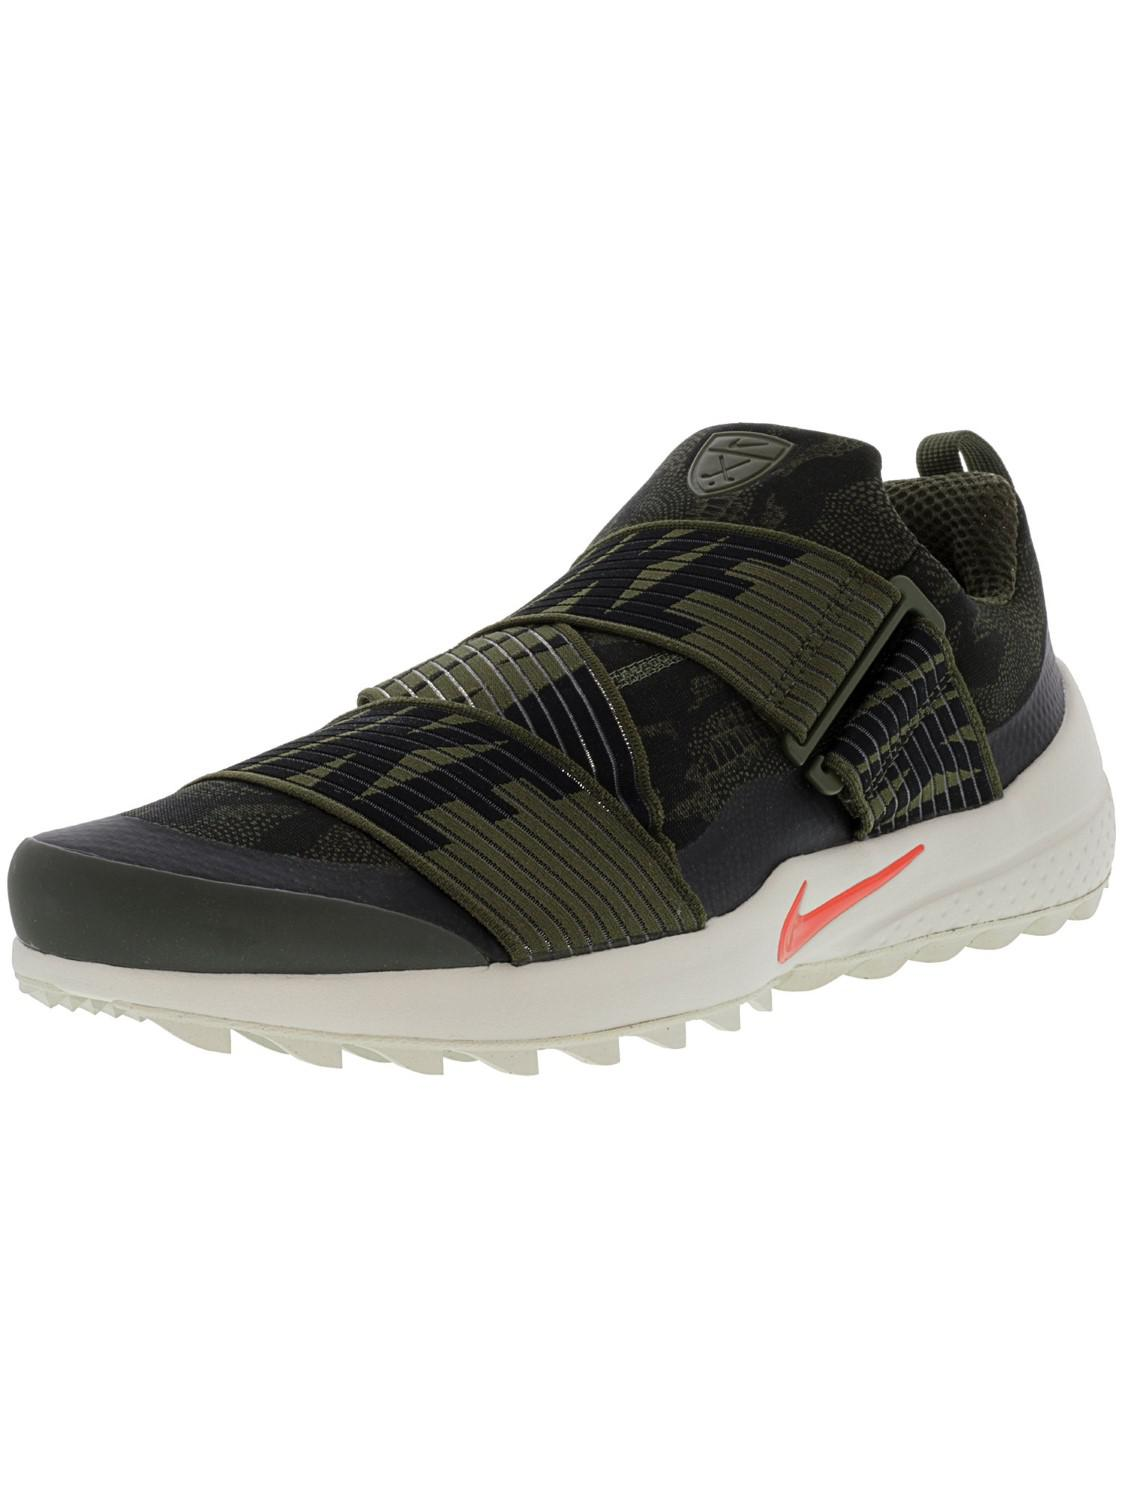 70773b60c7c4 Lyst - Nike Air Zoom Gimme Cargo Khaki   Black Light Bone Ankle-high ...